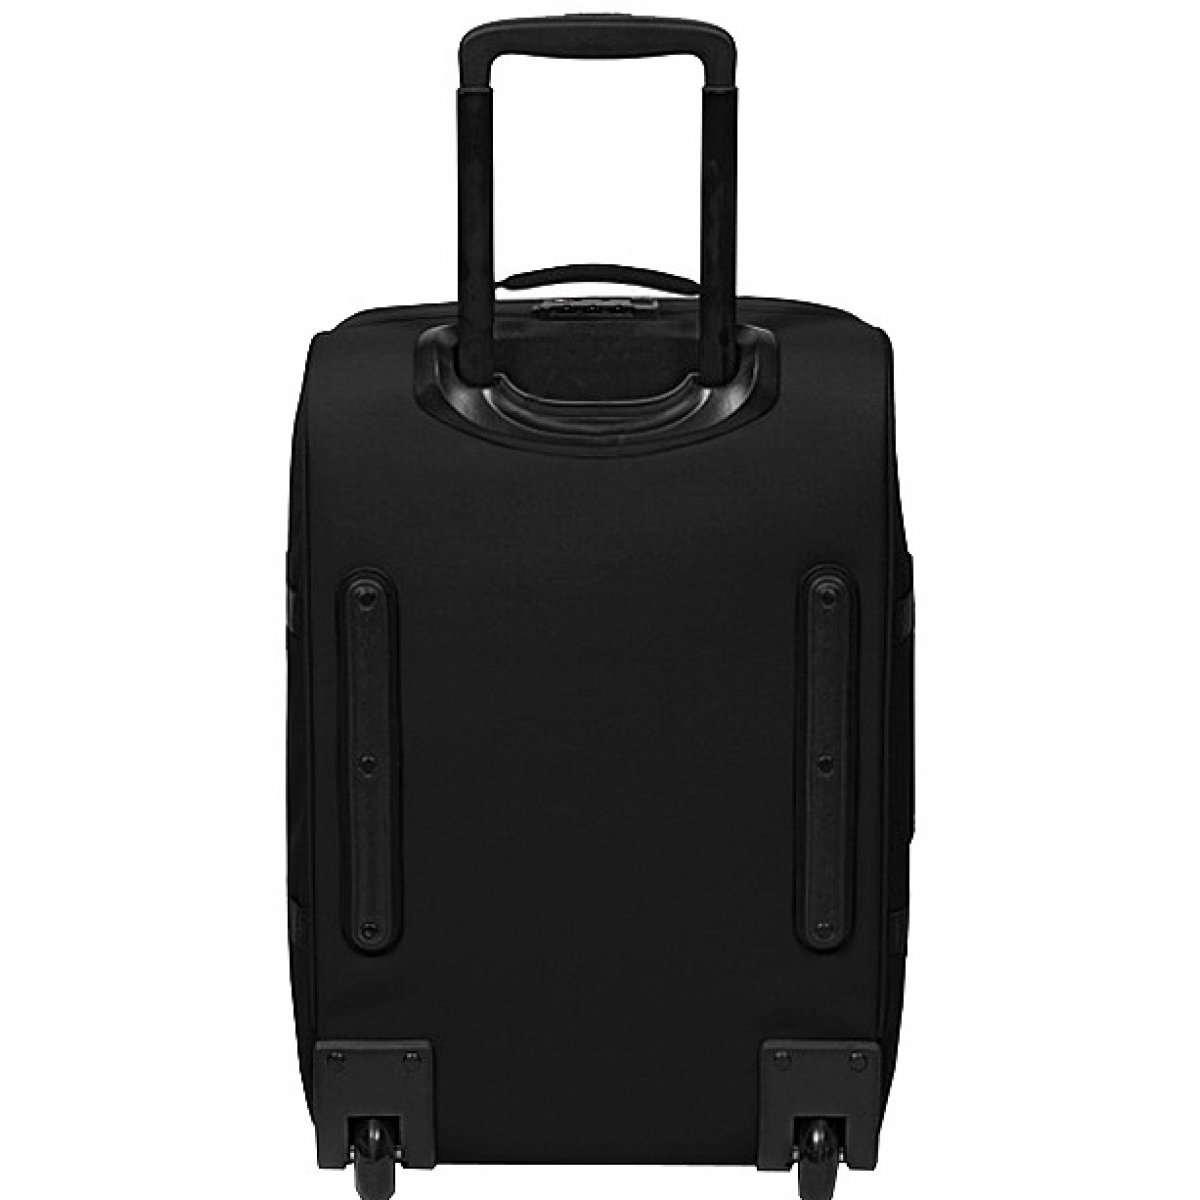 sac de voyage roulettes eastpak tranverz s ek61l ek61l008 couleur principale assortis. Black Bedroom Furniture Sets. Home Design Ideas